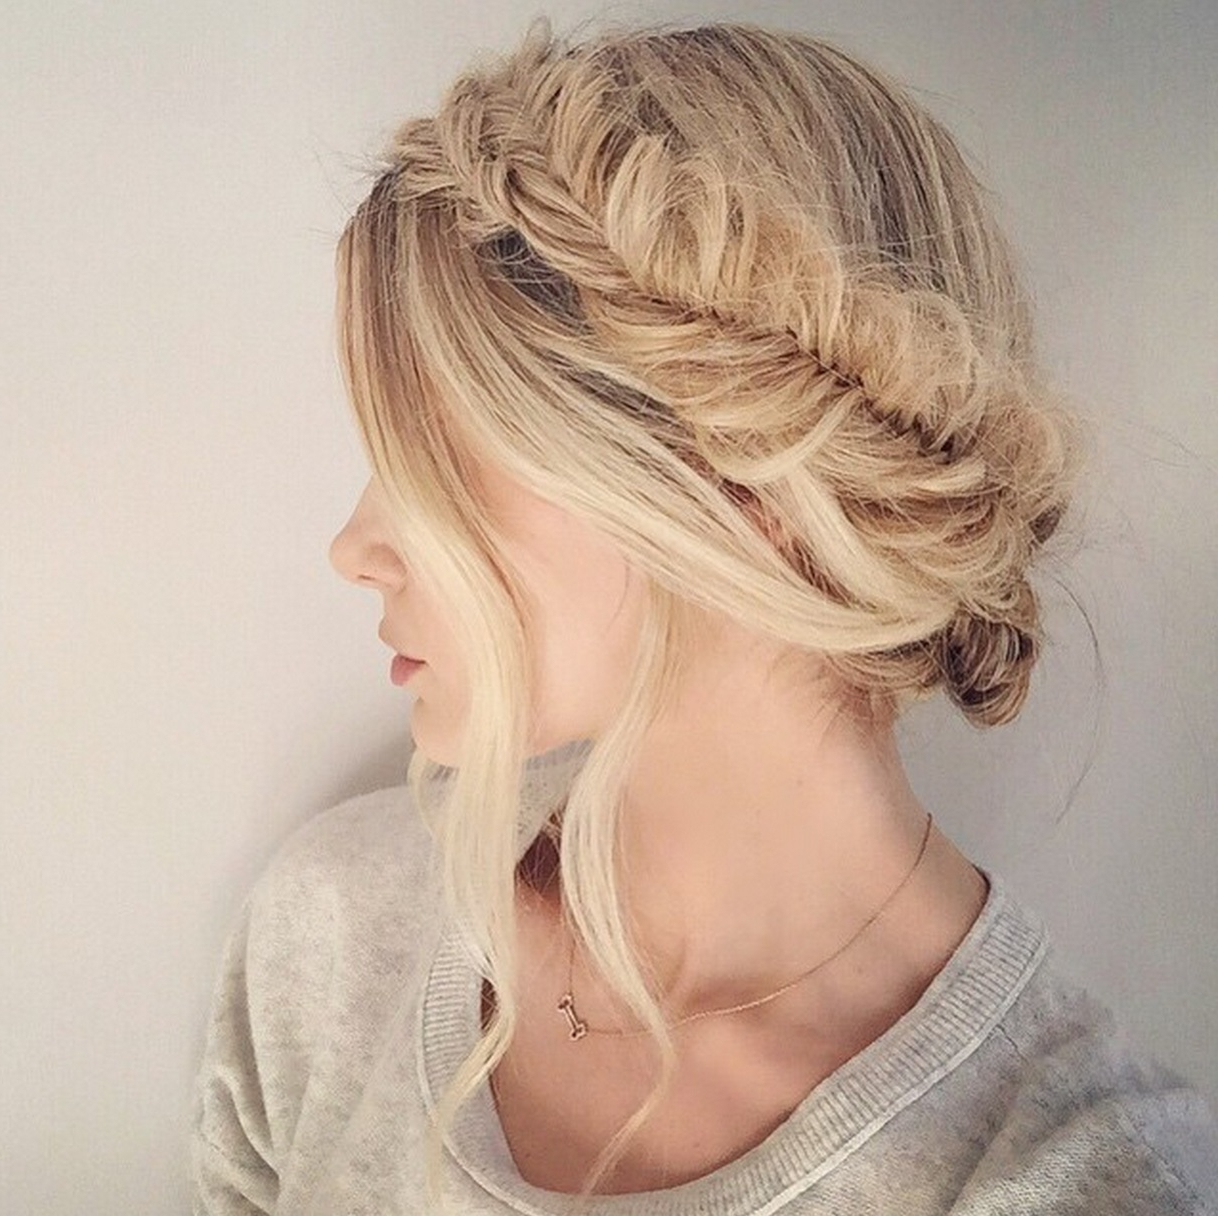 My Summer Staple Hairstyle – Barefoot Blondeamber Within Widely Used Fishtail Crown Braided Hairstyles (View 10 of 20)